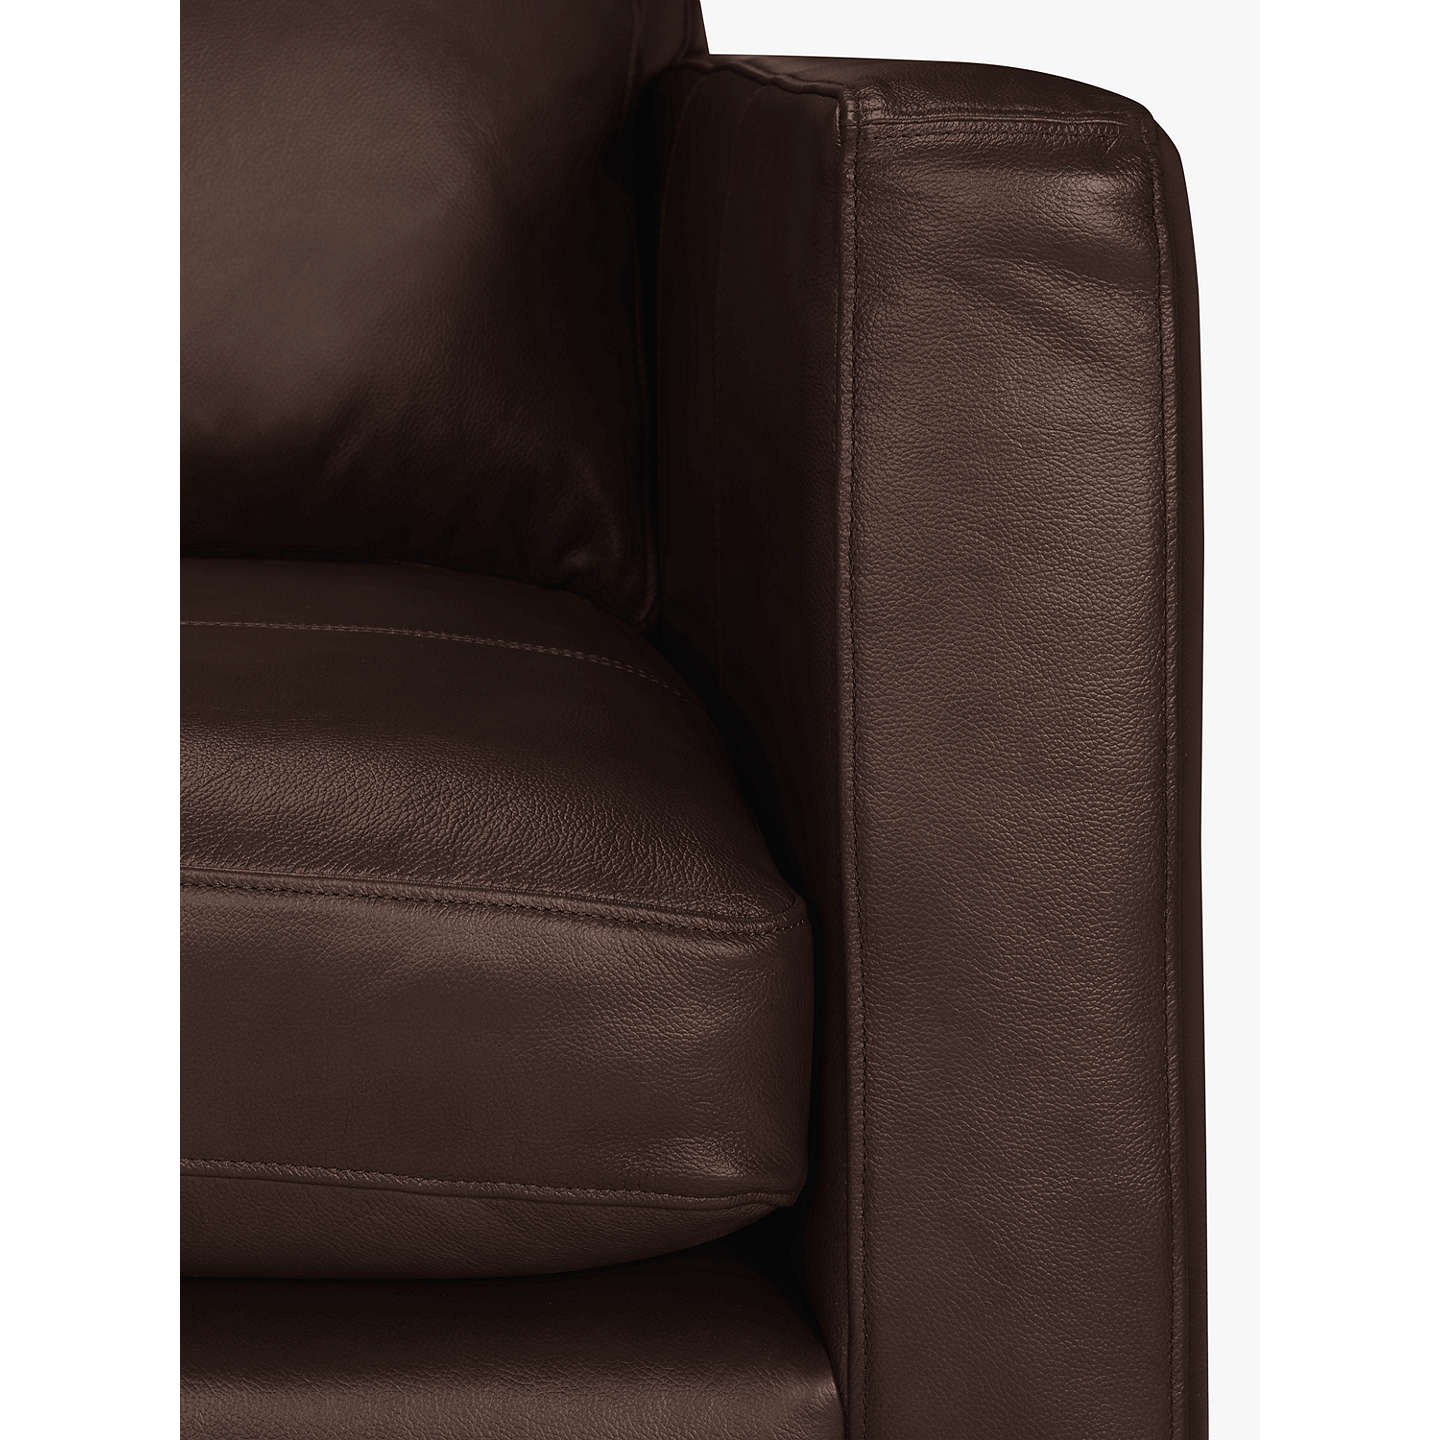 BuyJohn Lewis Bailey Leather LHF Chaise End Sofa, Dark Leg, Nature Brown Online at johnlewis.com